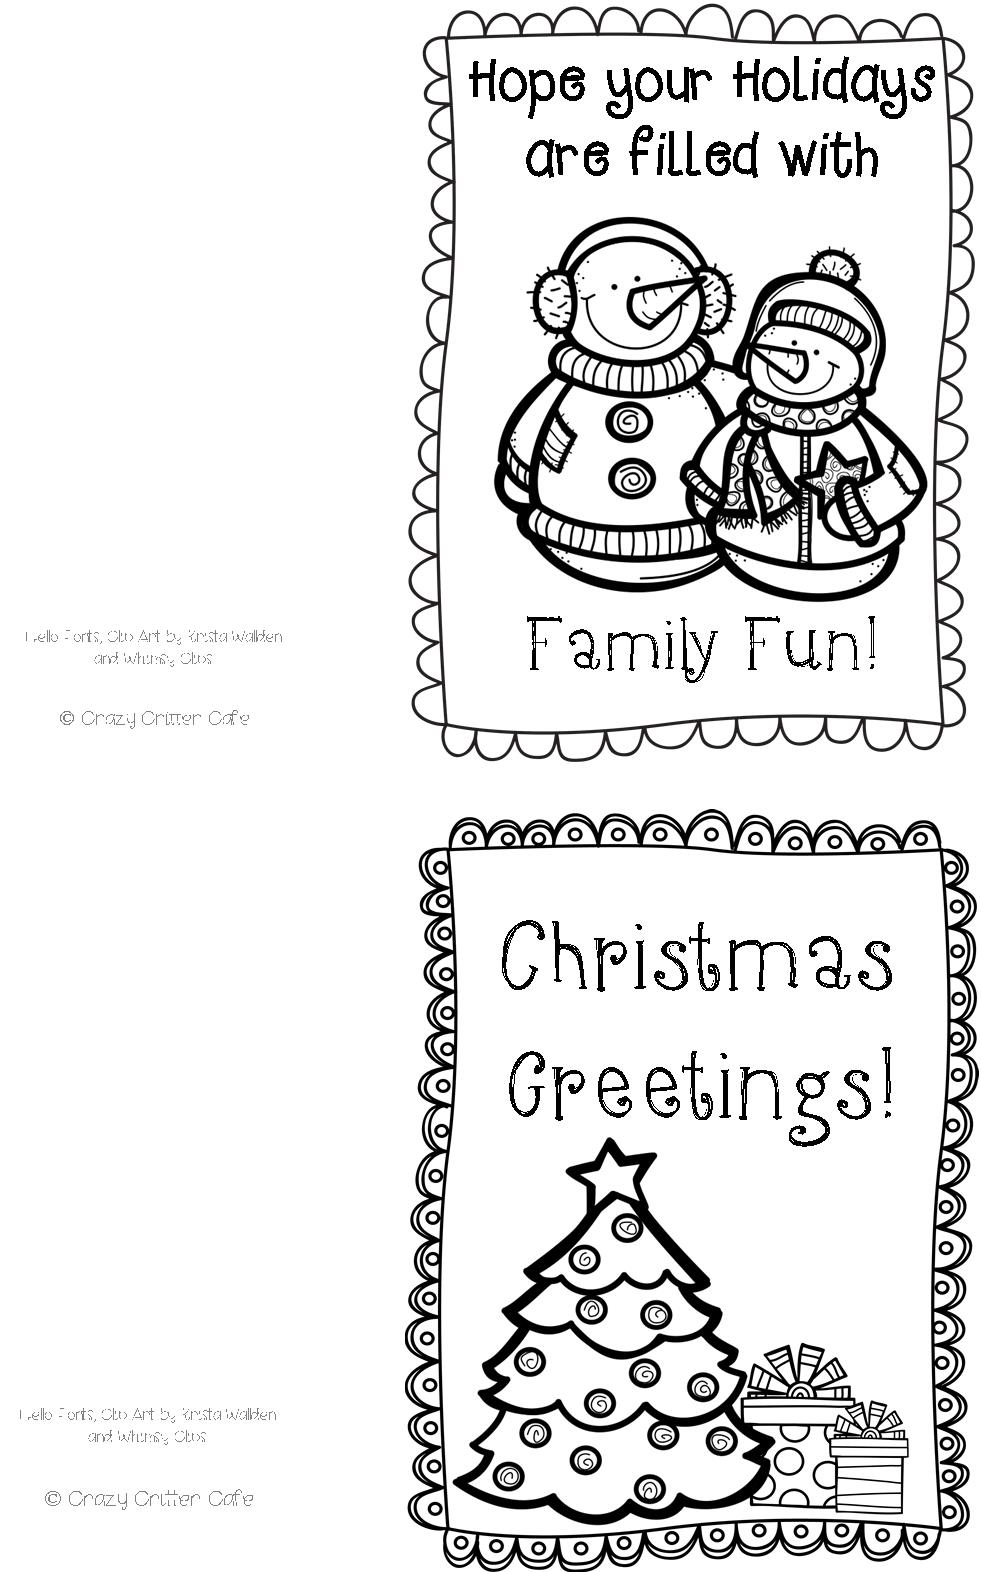 crazy critter cafe freebie 3 color your own christmas cards